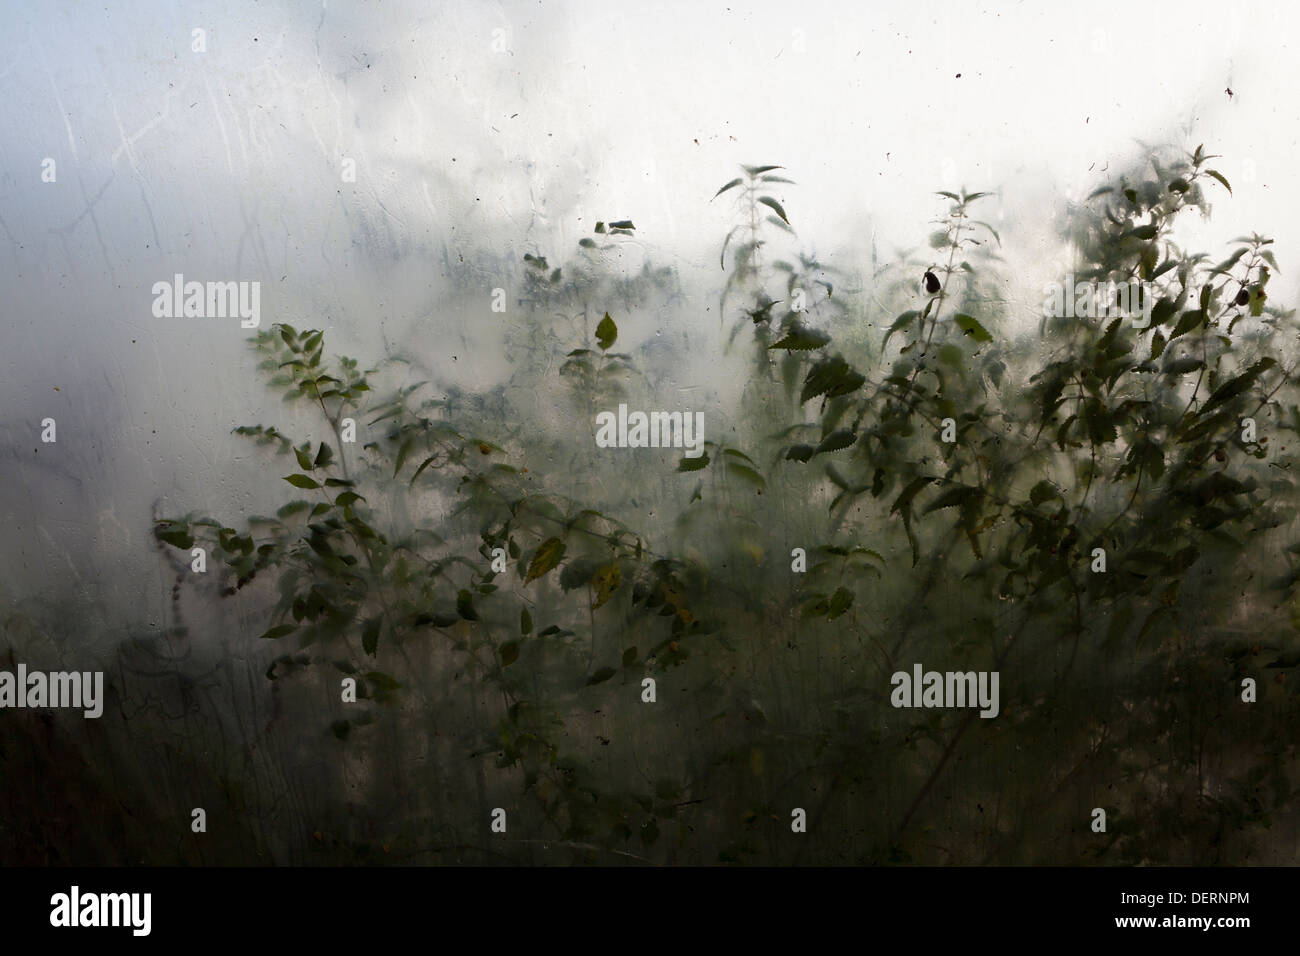 Plants seen growing through polytunnel sheeting - Stock Image